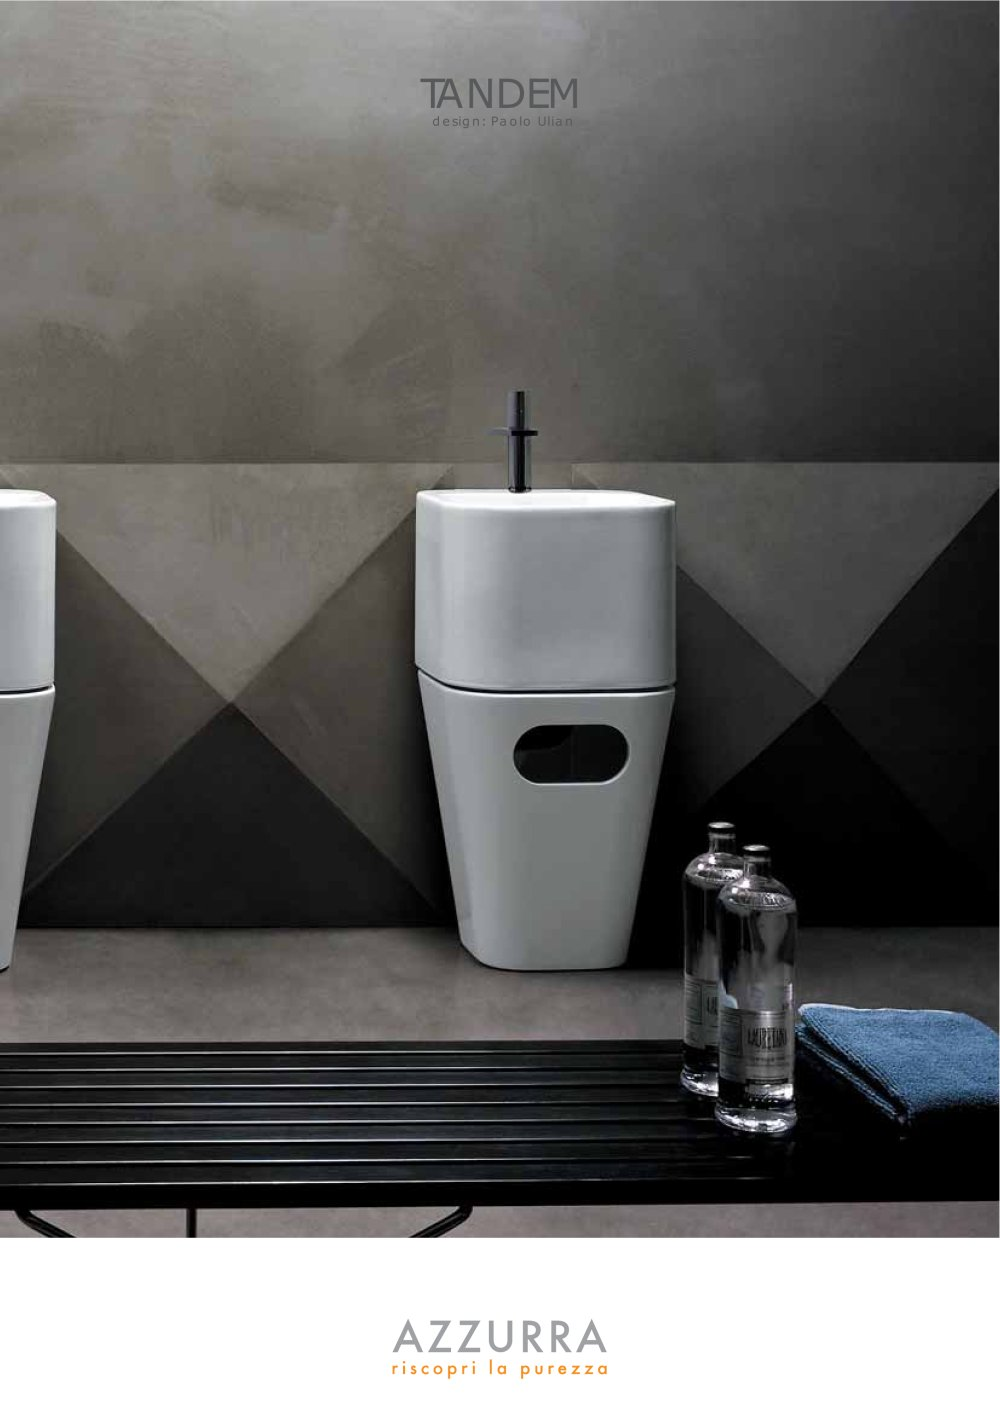 lavabo totem tandem azzurra sinergia y materiales. Black Bedroom Furniture Sets. Home Design Ideas